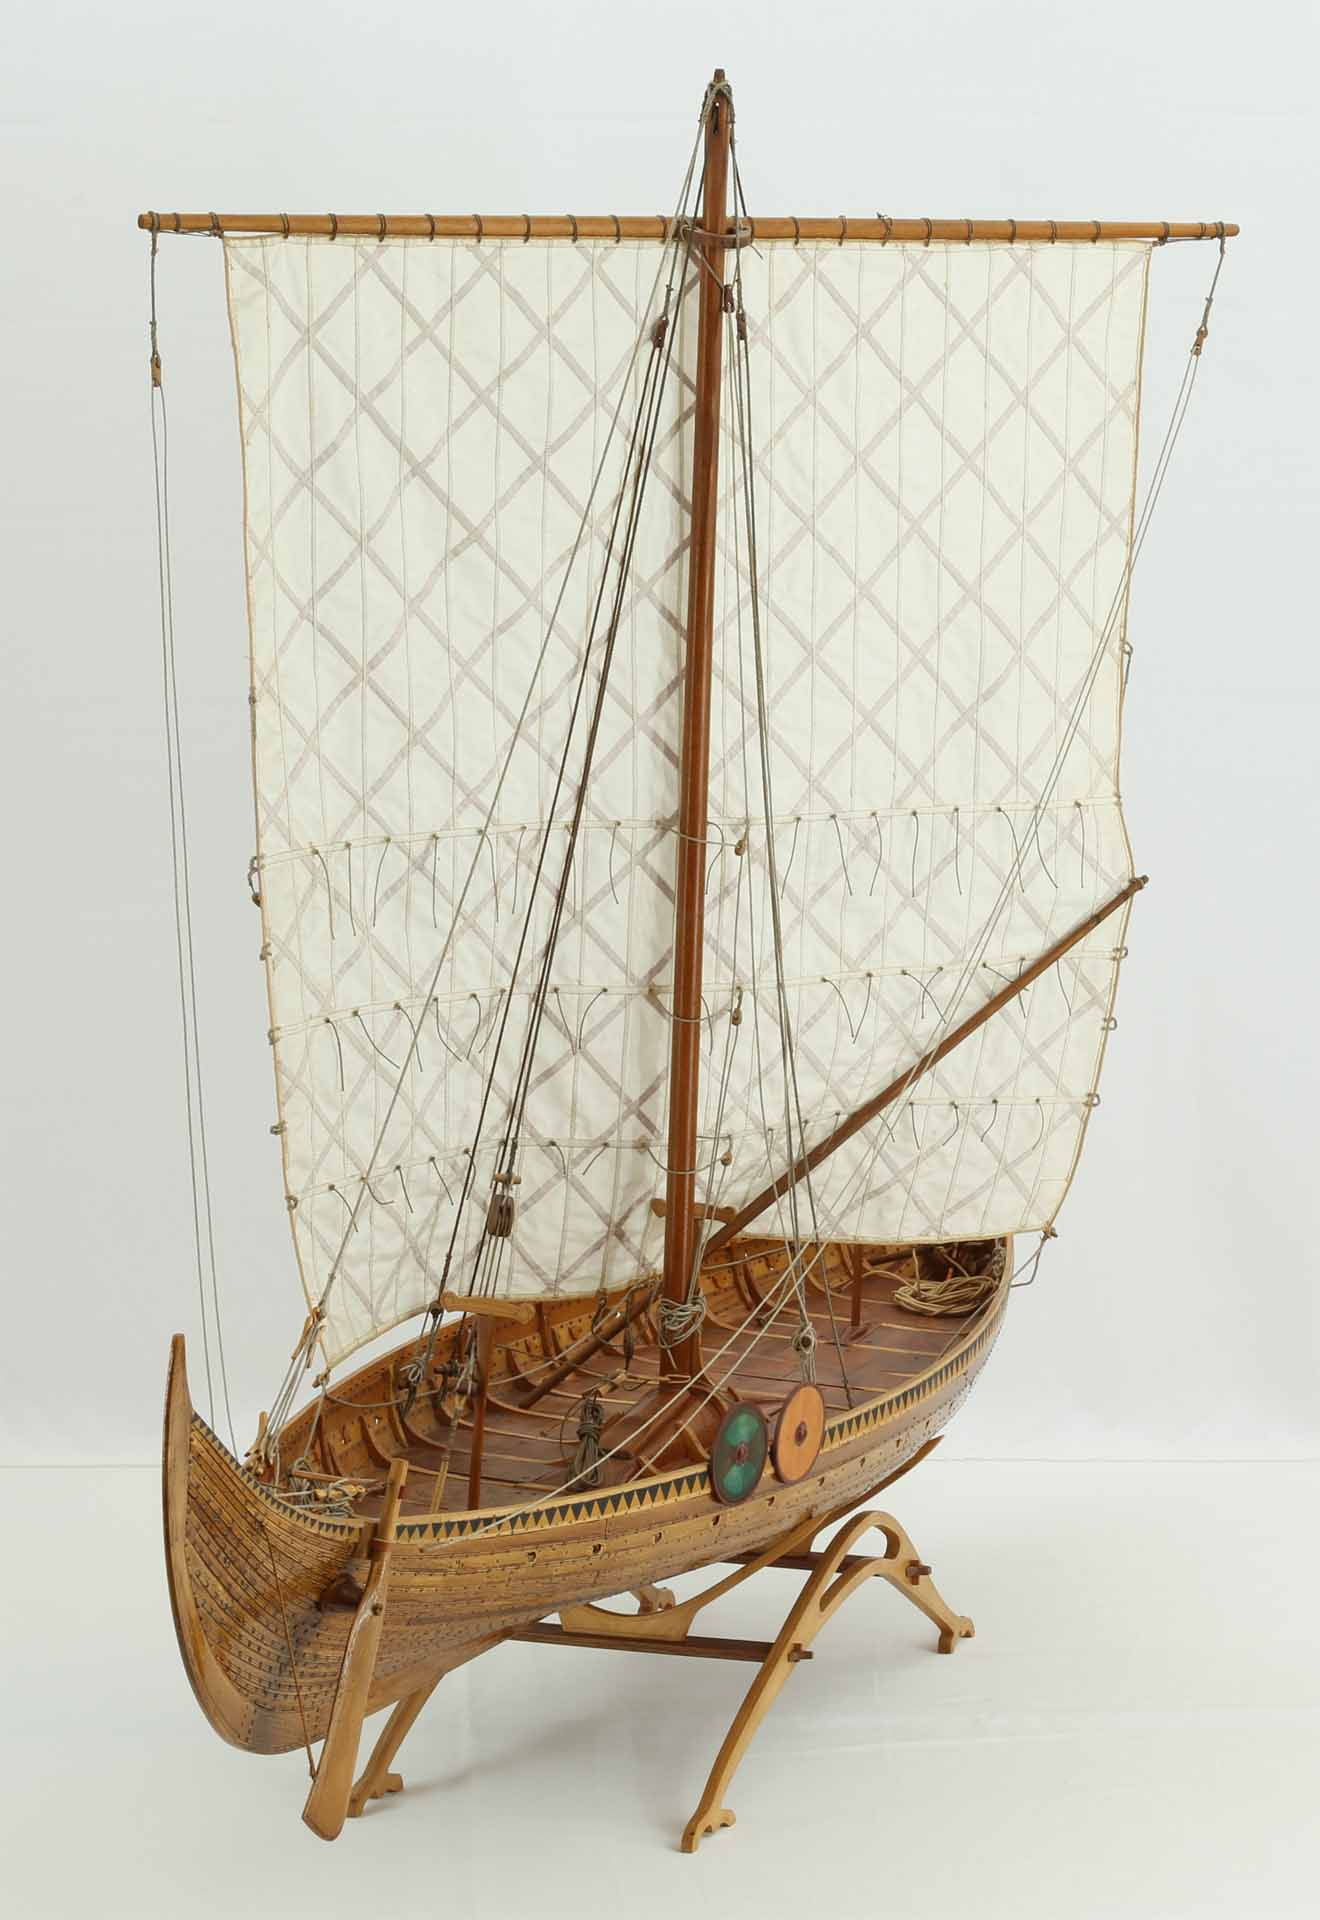 Photos of model of Gokstad ship of late 9th century views of entire model